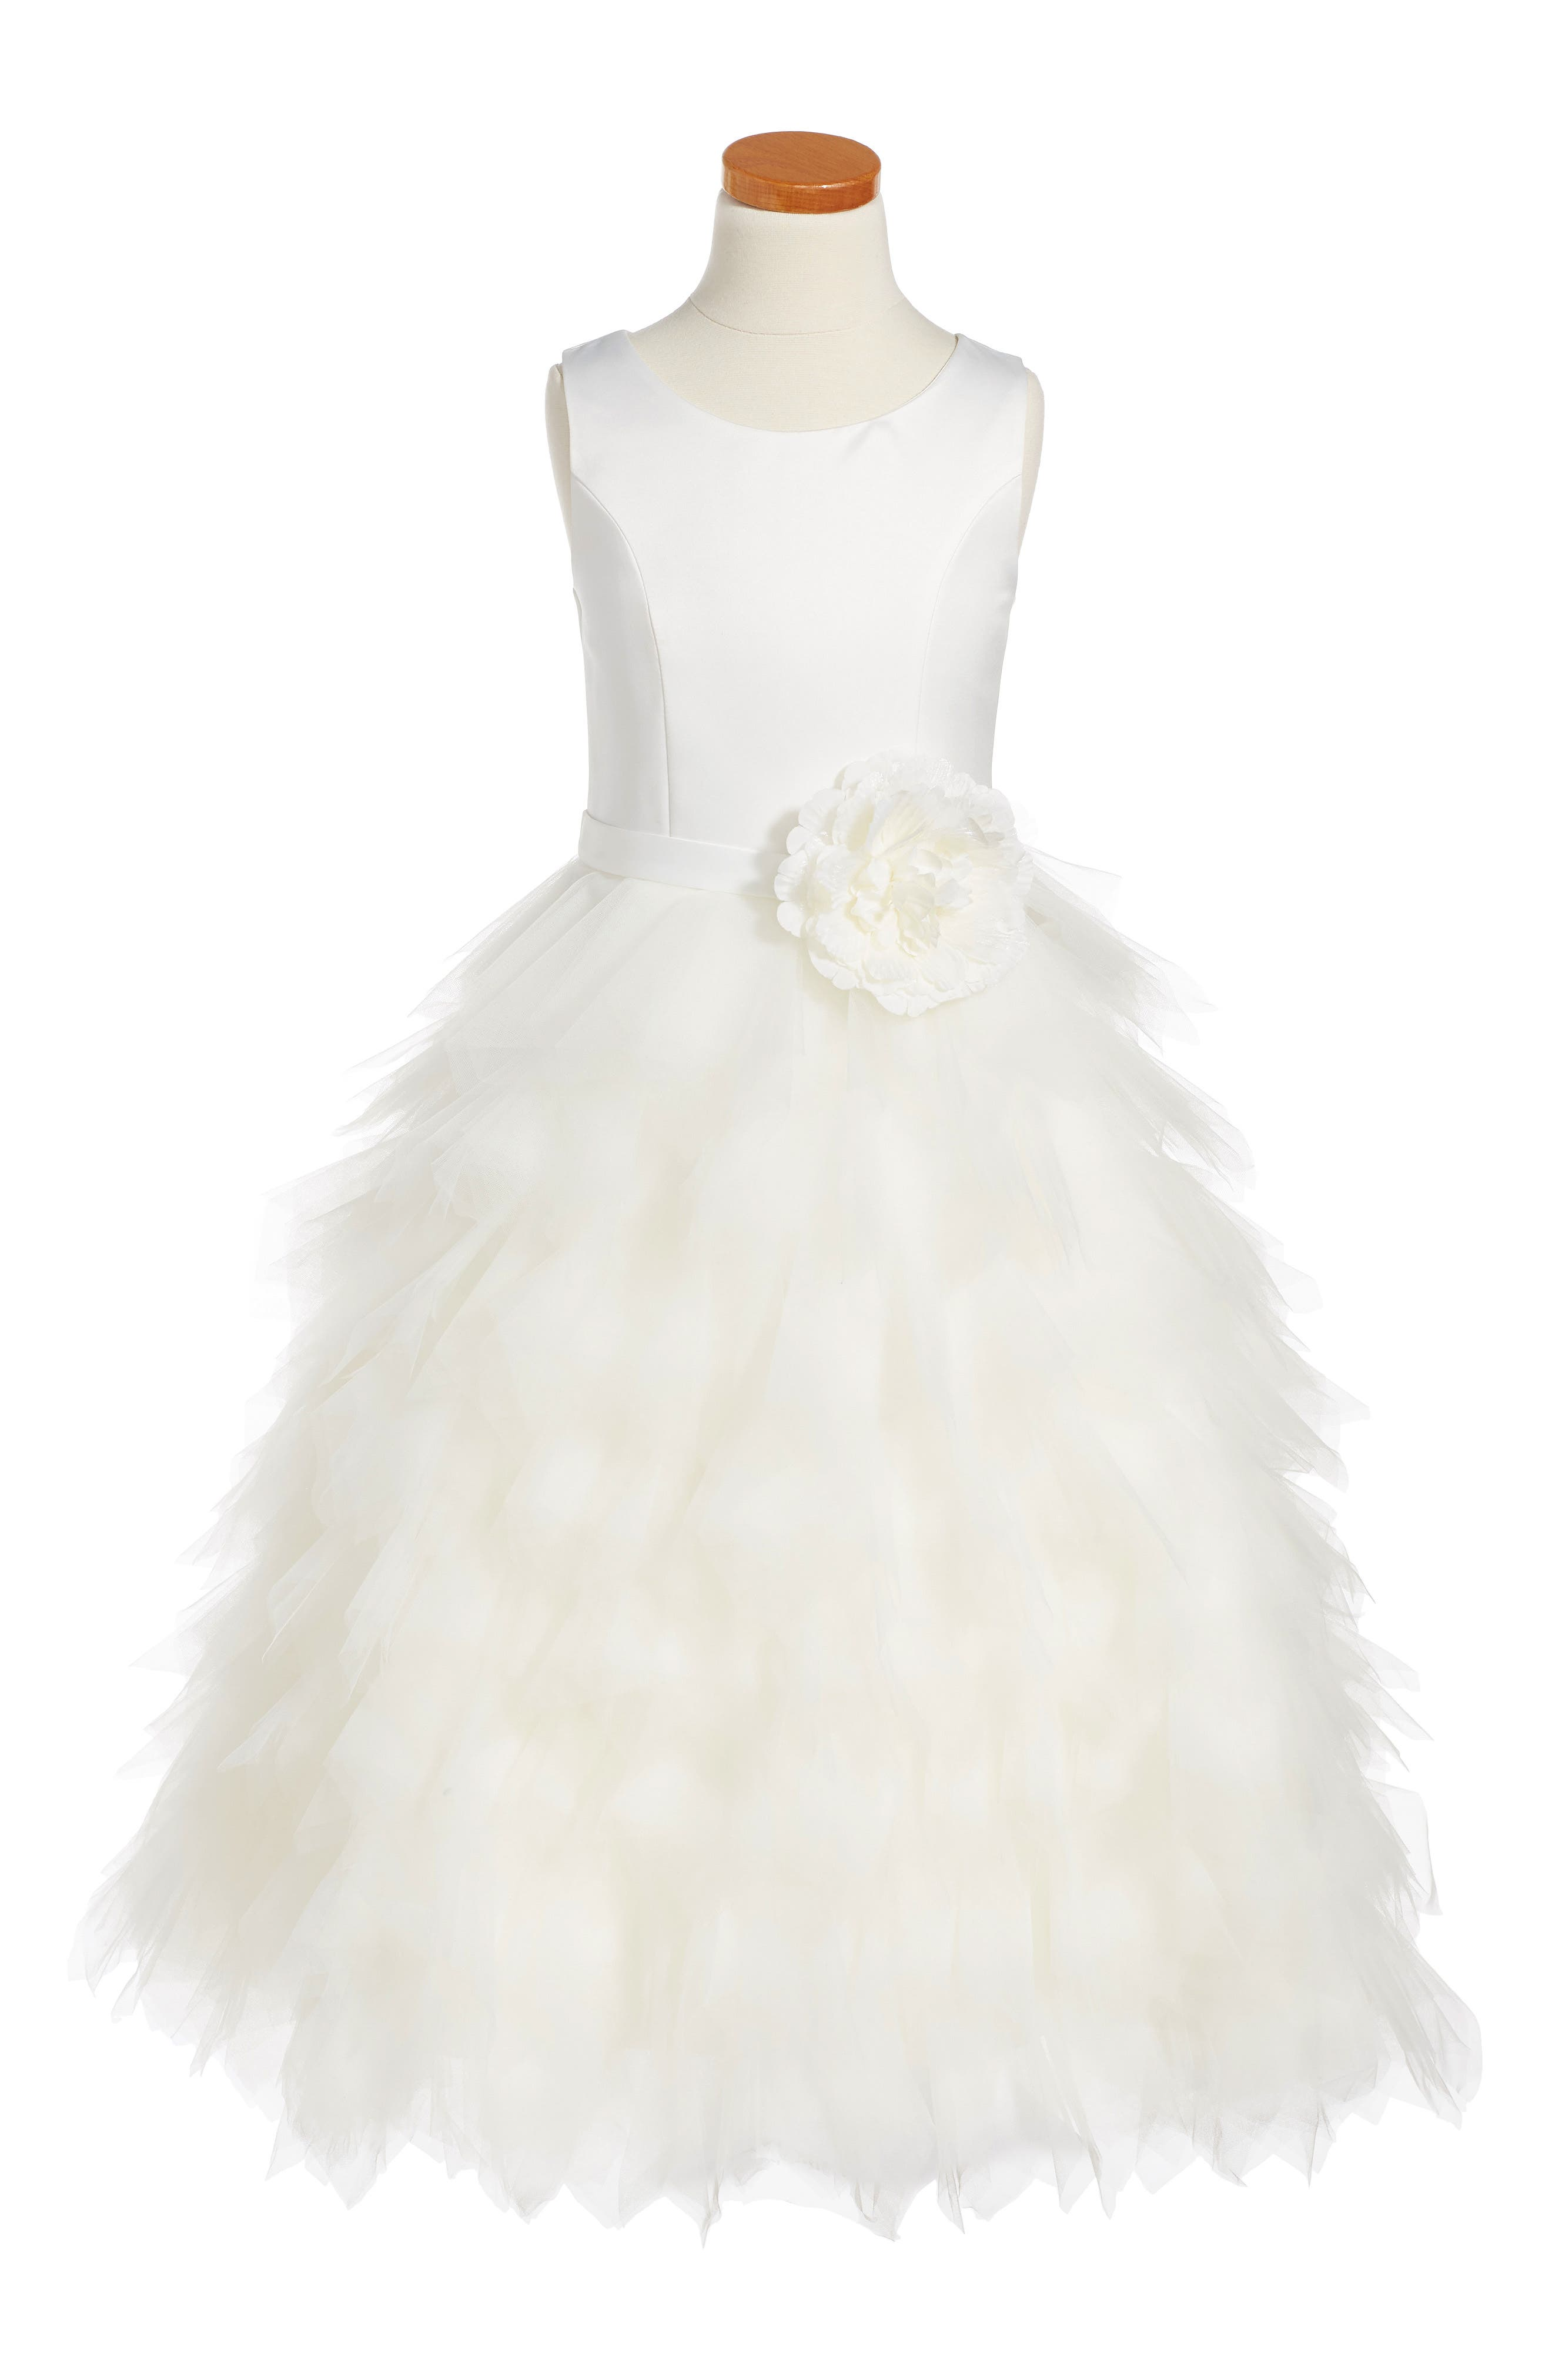 Satin & Tulle Dress,                             Main thumbnail 1, color,                             Ivory